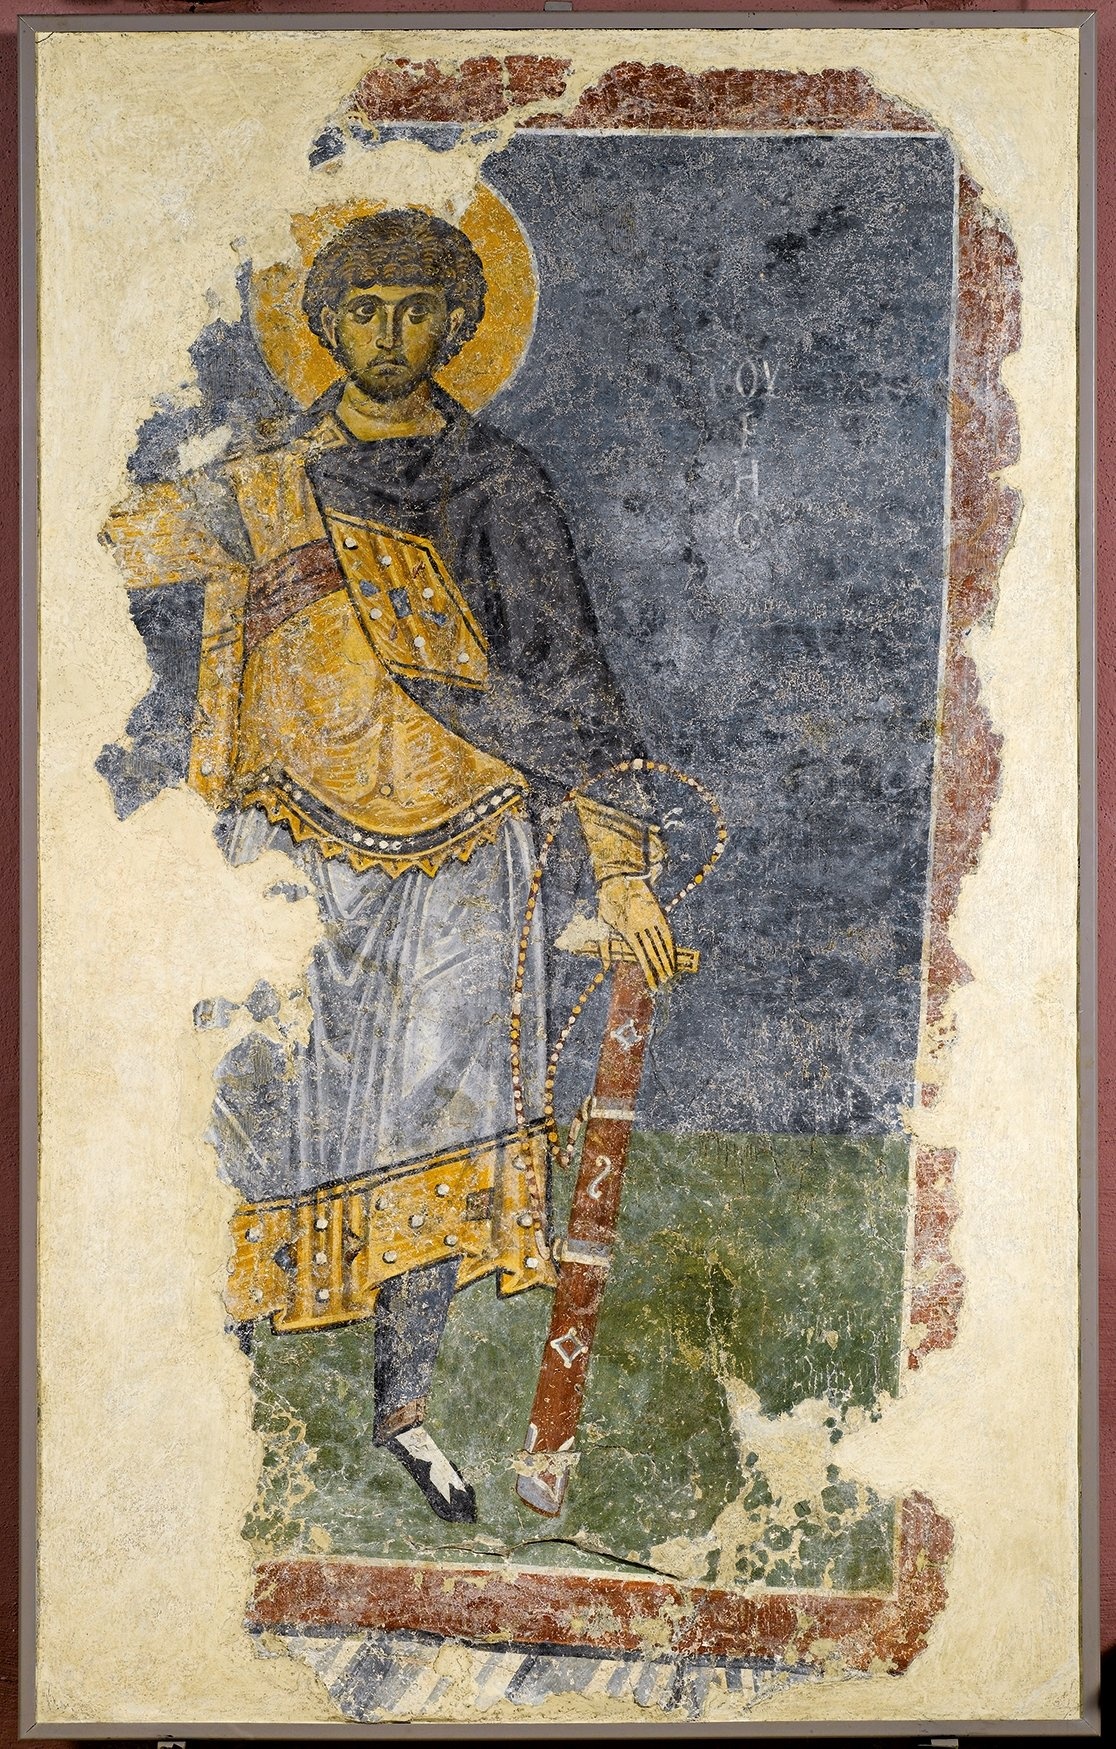 Fresco depicting Saint Mercurios, 13th-14th century, paint on plaster, 167 by 105 by 11 centimeters, selected from Istanbul Archaeology Museums, Istanbul, Turkey. (Courtesy of SSM)